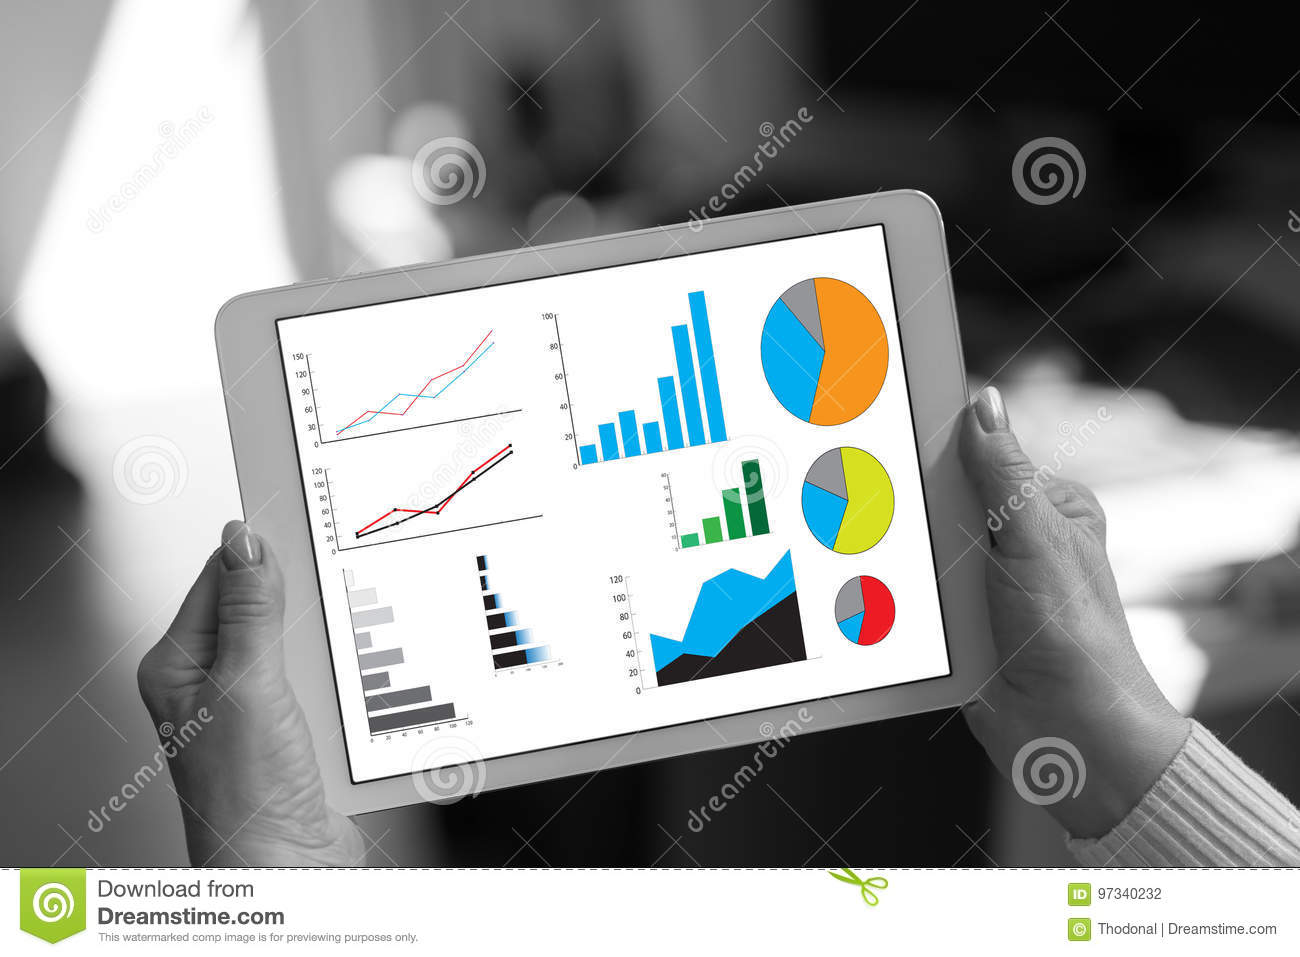 Graphical analysis concept on a tablet